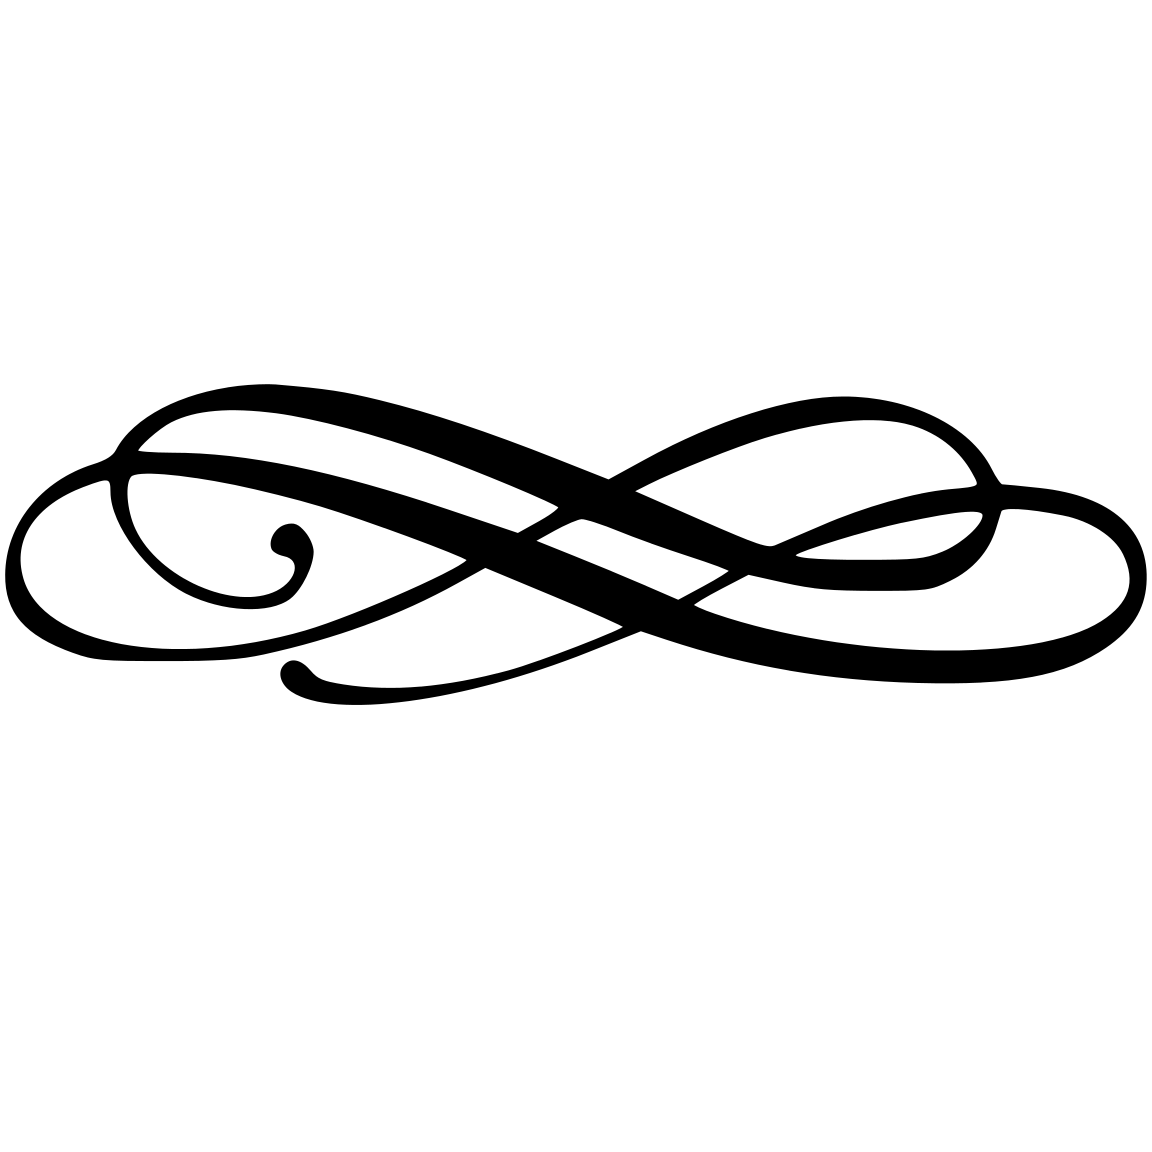 Free Simple Flourish Cliparts, Download Free Clip Art, Free Clip Art.